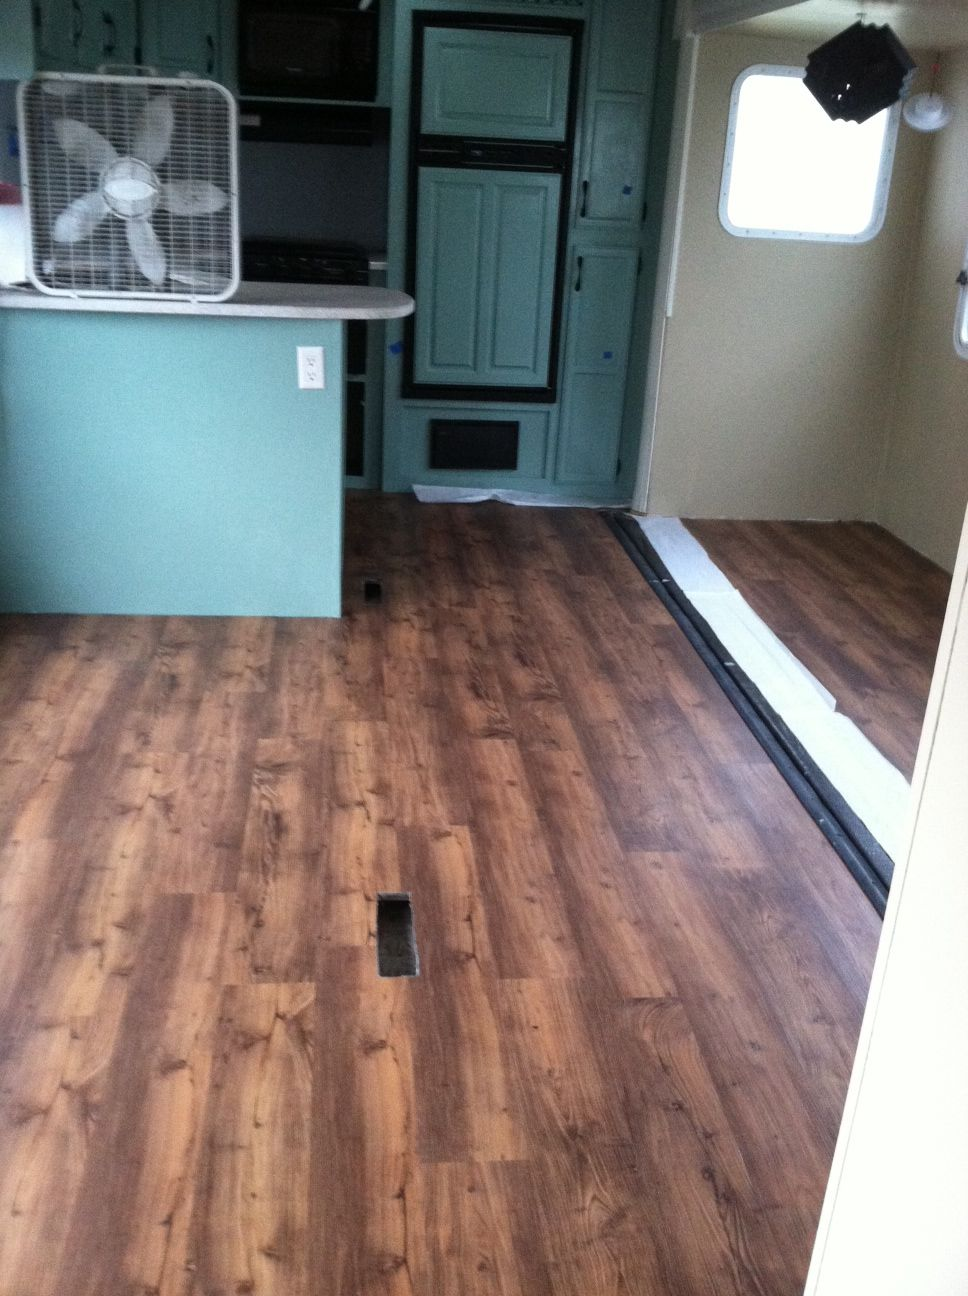 The new flooring is going in TrafficMaster Allure